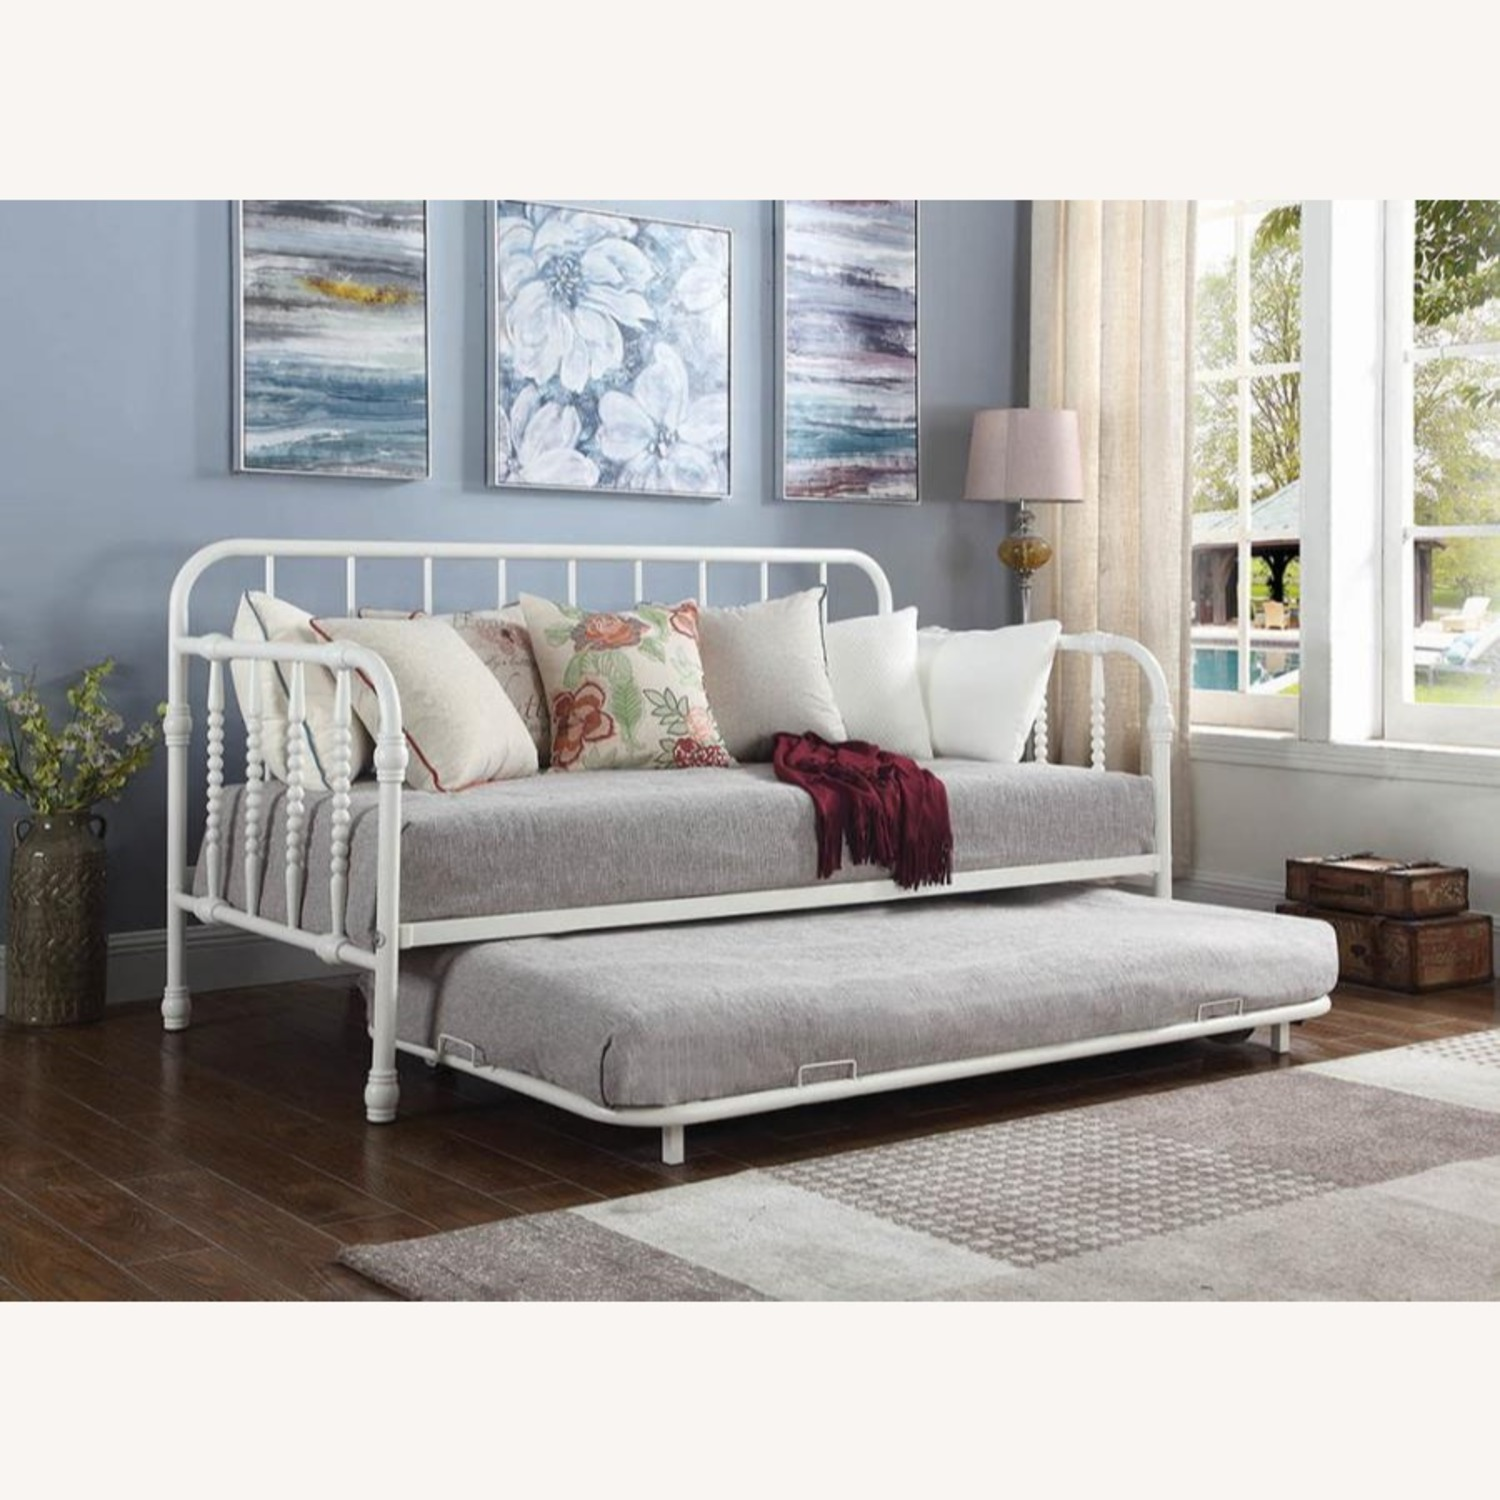 Twin Daybed W/ Trundle In White Steel Tubing - image-2